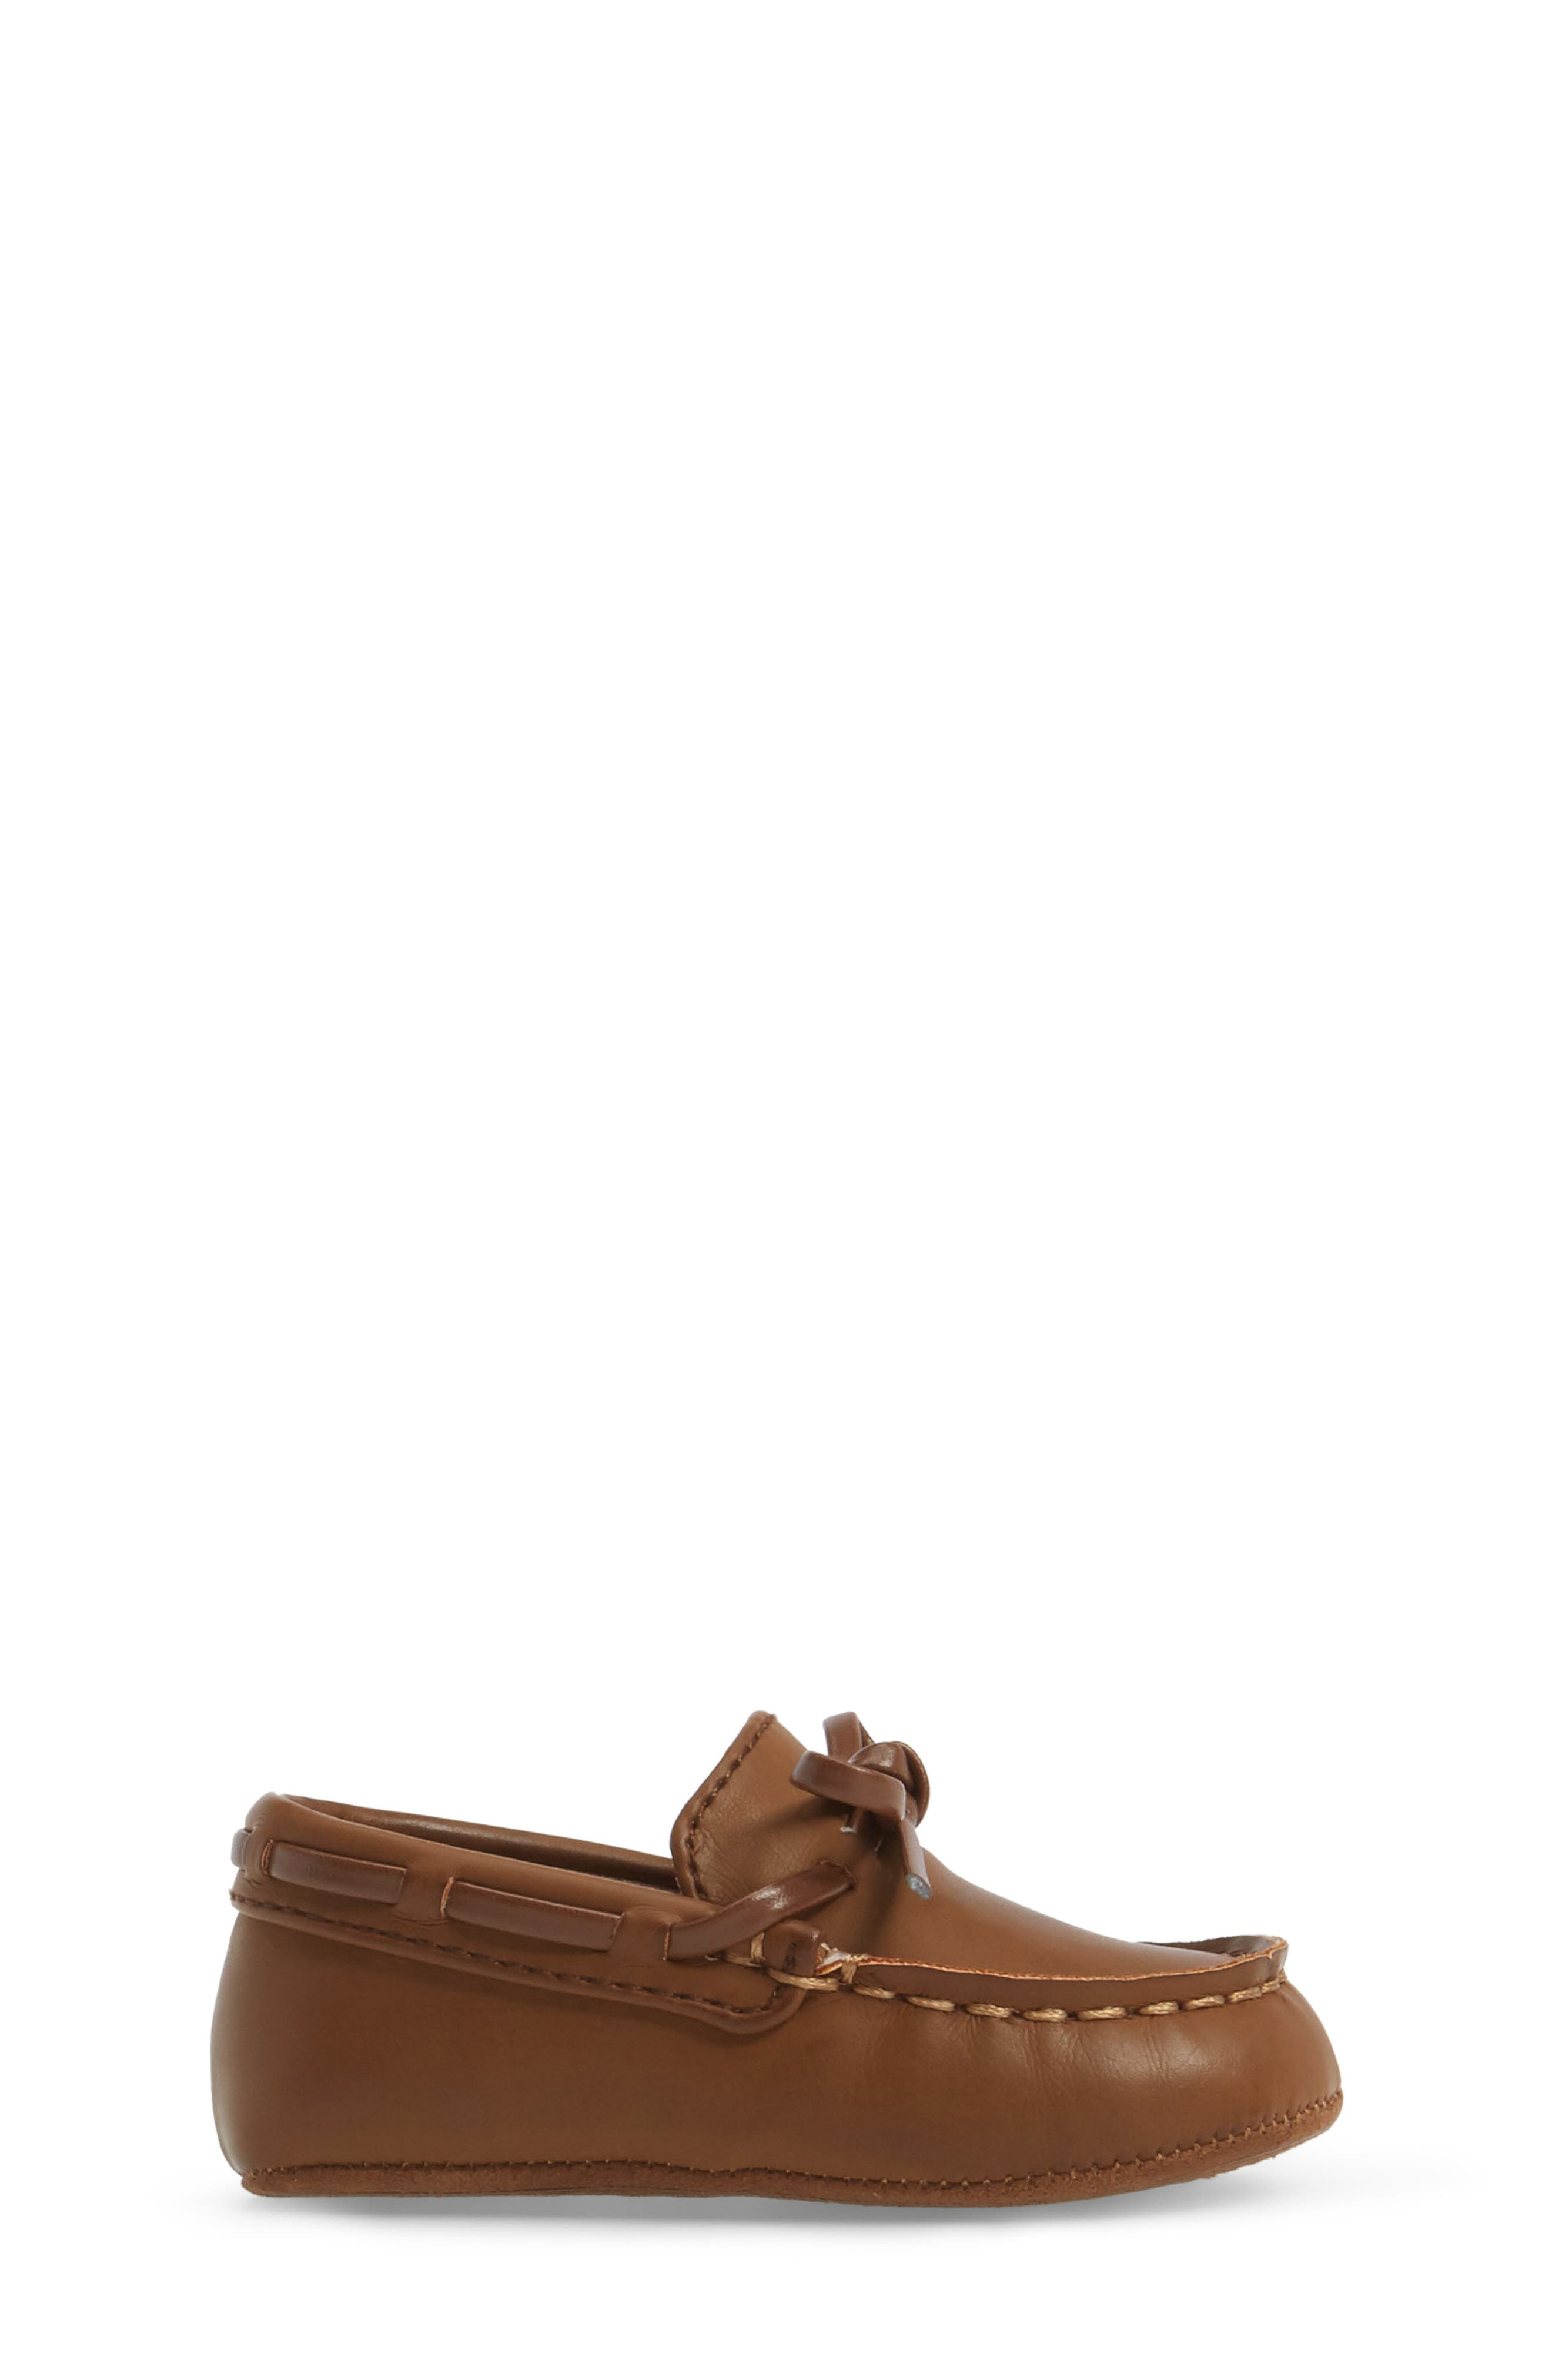 KENNETH COLE NEW YORK, Baby Boat Shoe, Alternate thumbnail 3, color, CARAMEL